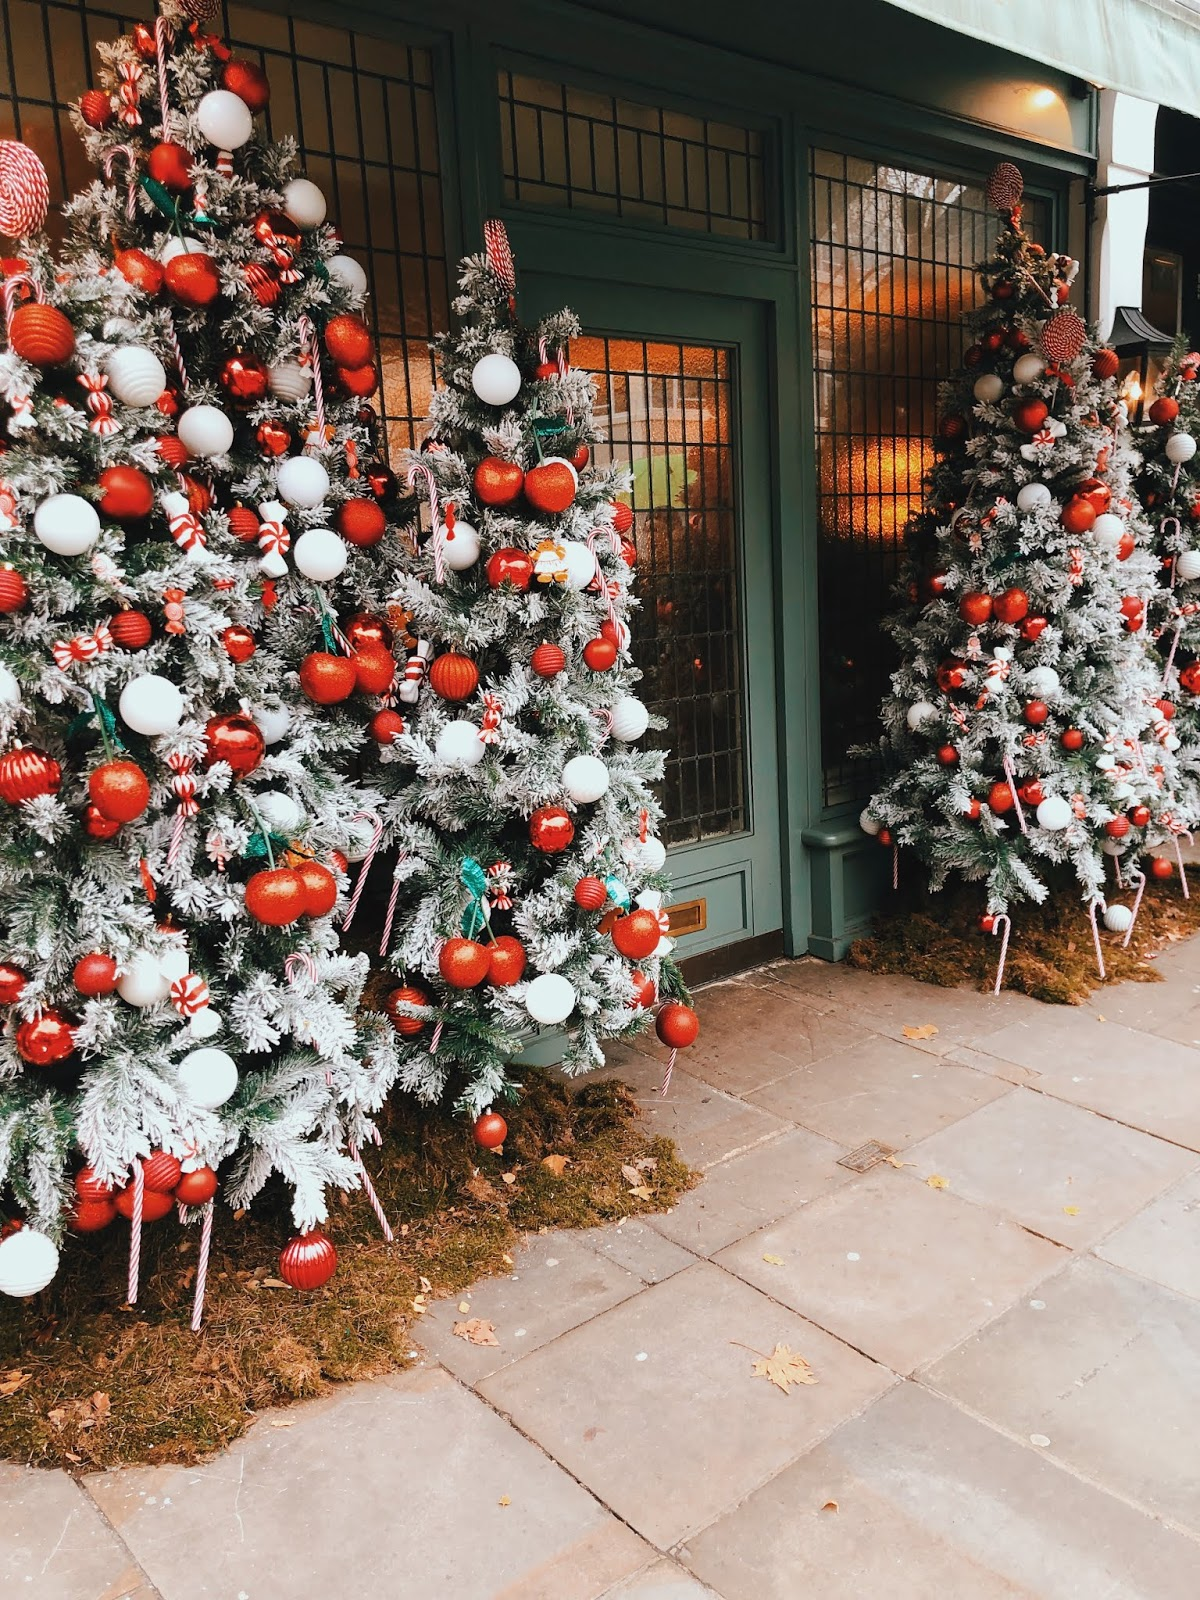 christmas in london, christmas decoration in london, christmas 2018, christmas decoration london 2018, indian blogger, london blogger, ivy chelsea garden, ivy chelsea christmas, chelsea christmas decoration